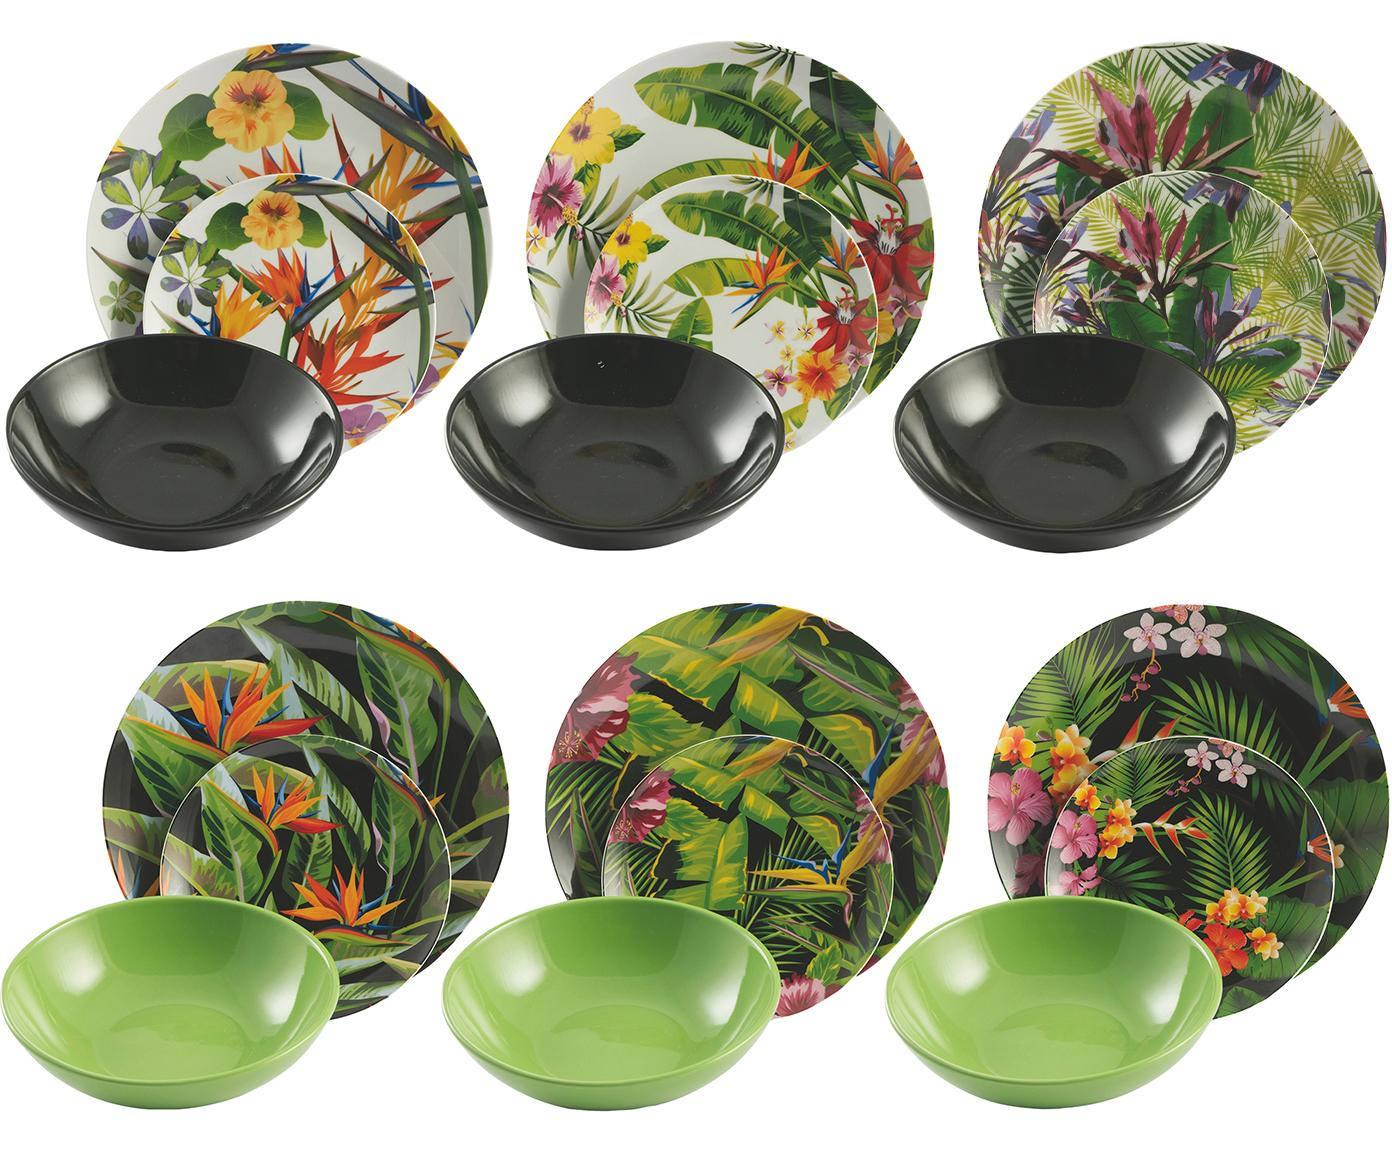 Set 18 piatti per 6 persone Tropical Jungle, Porcellana, terracotta, Multicolore, Diverse dimensioni